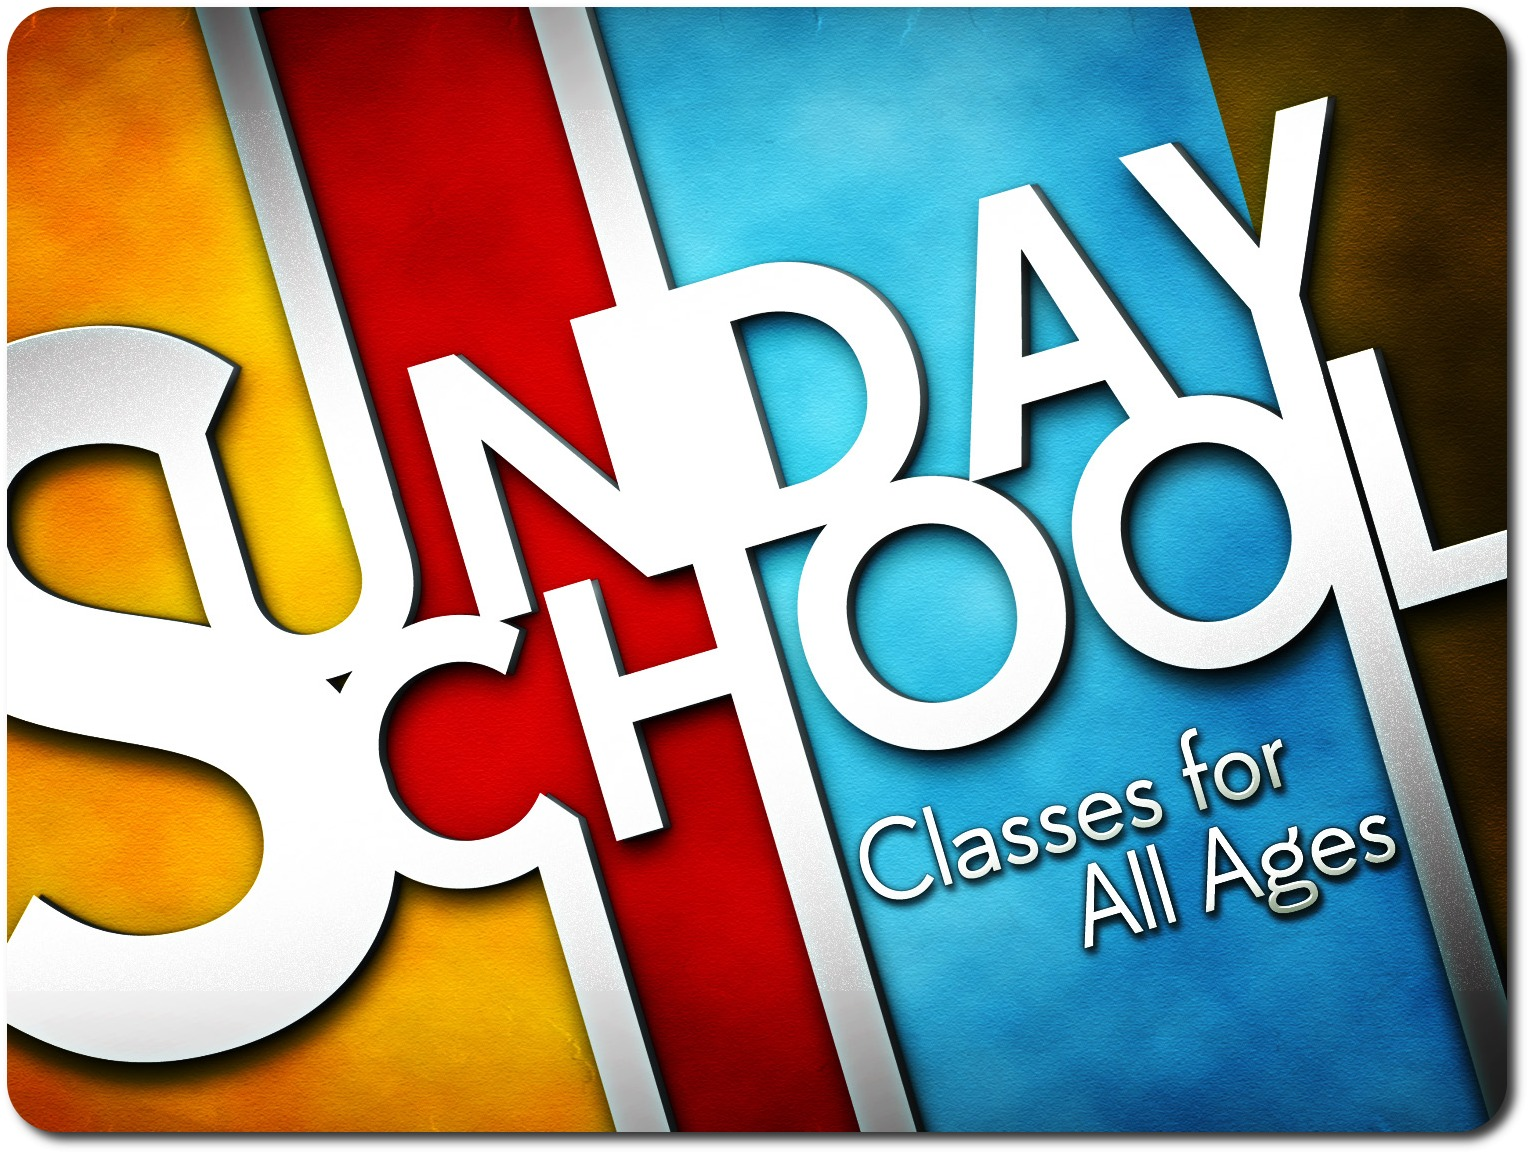 Sunday School/Bible Classes